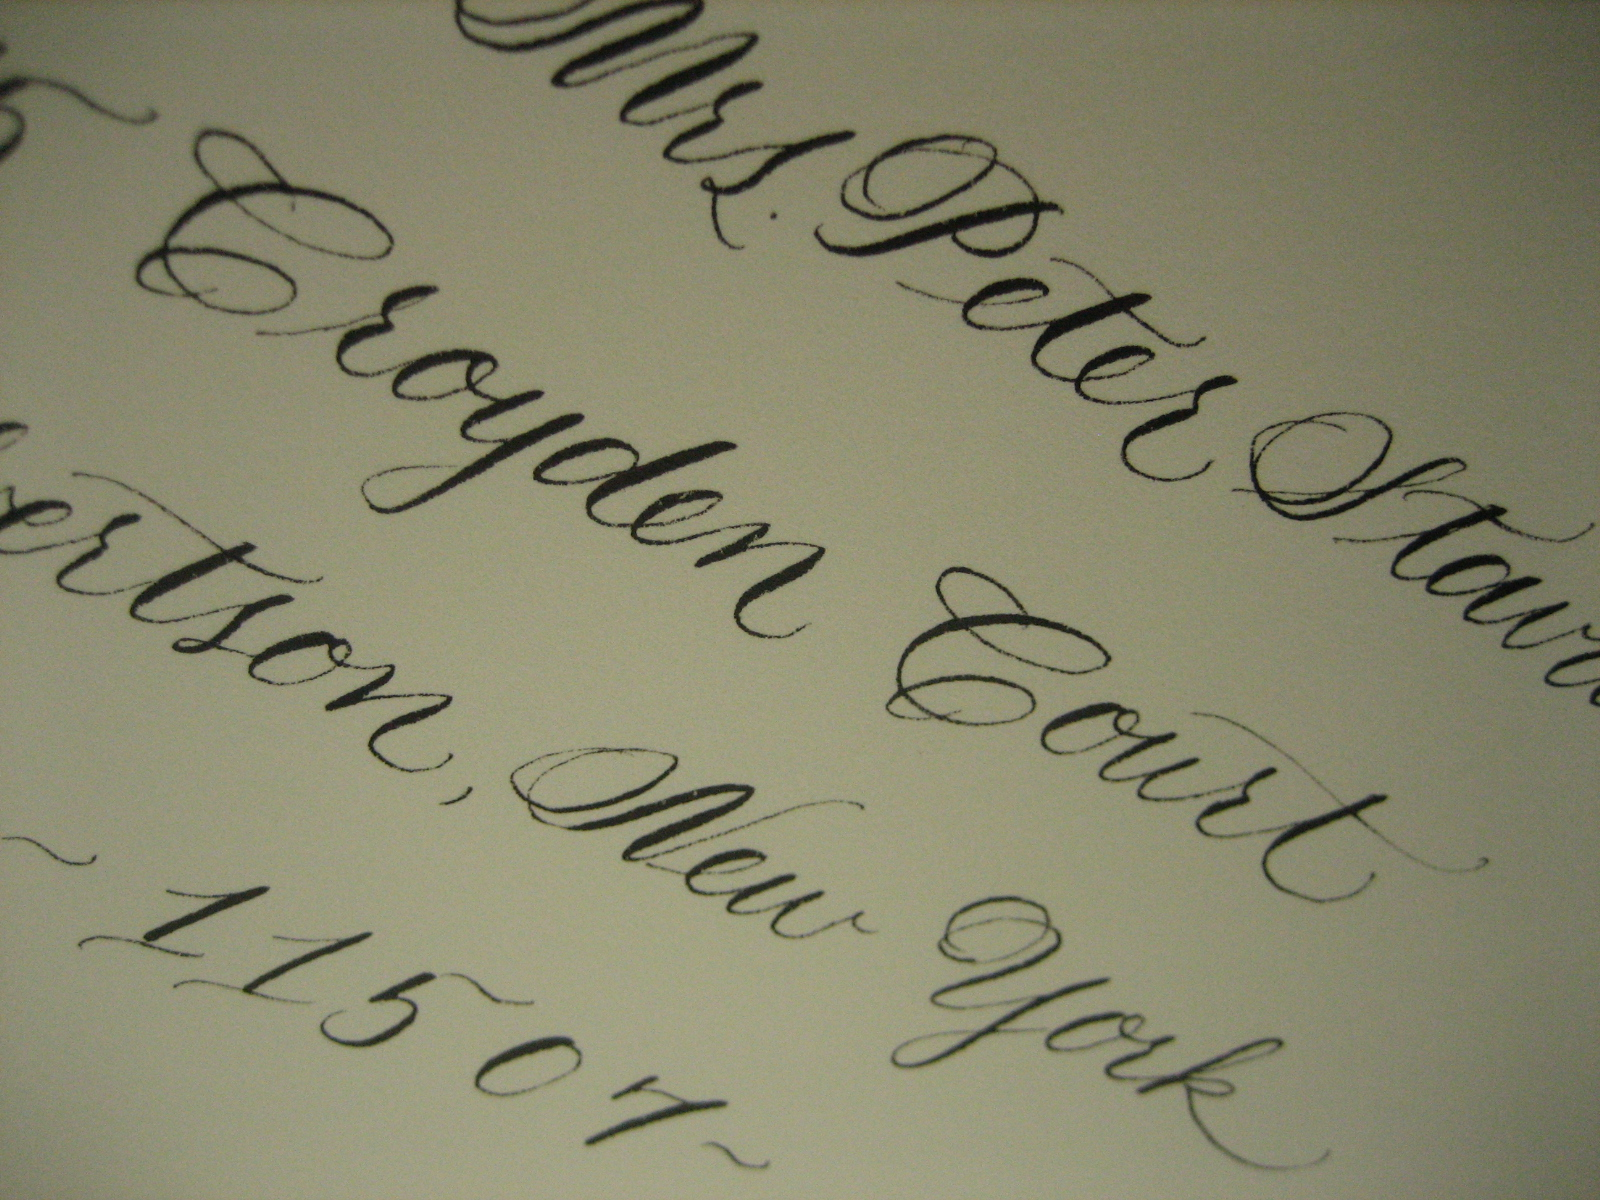 Calligraphy Online Store Navy Bean Calligraphy Projects